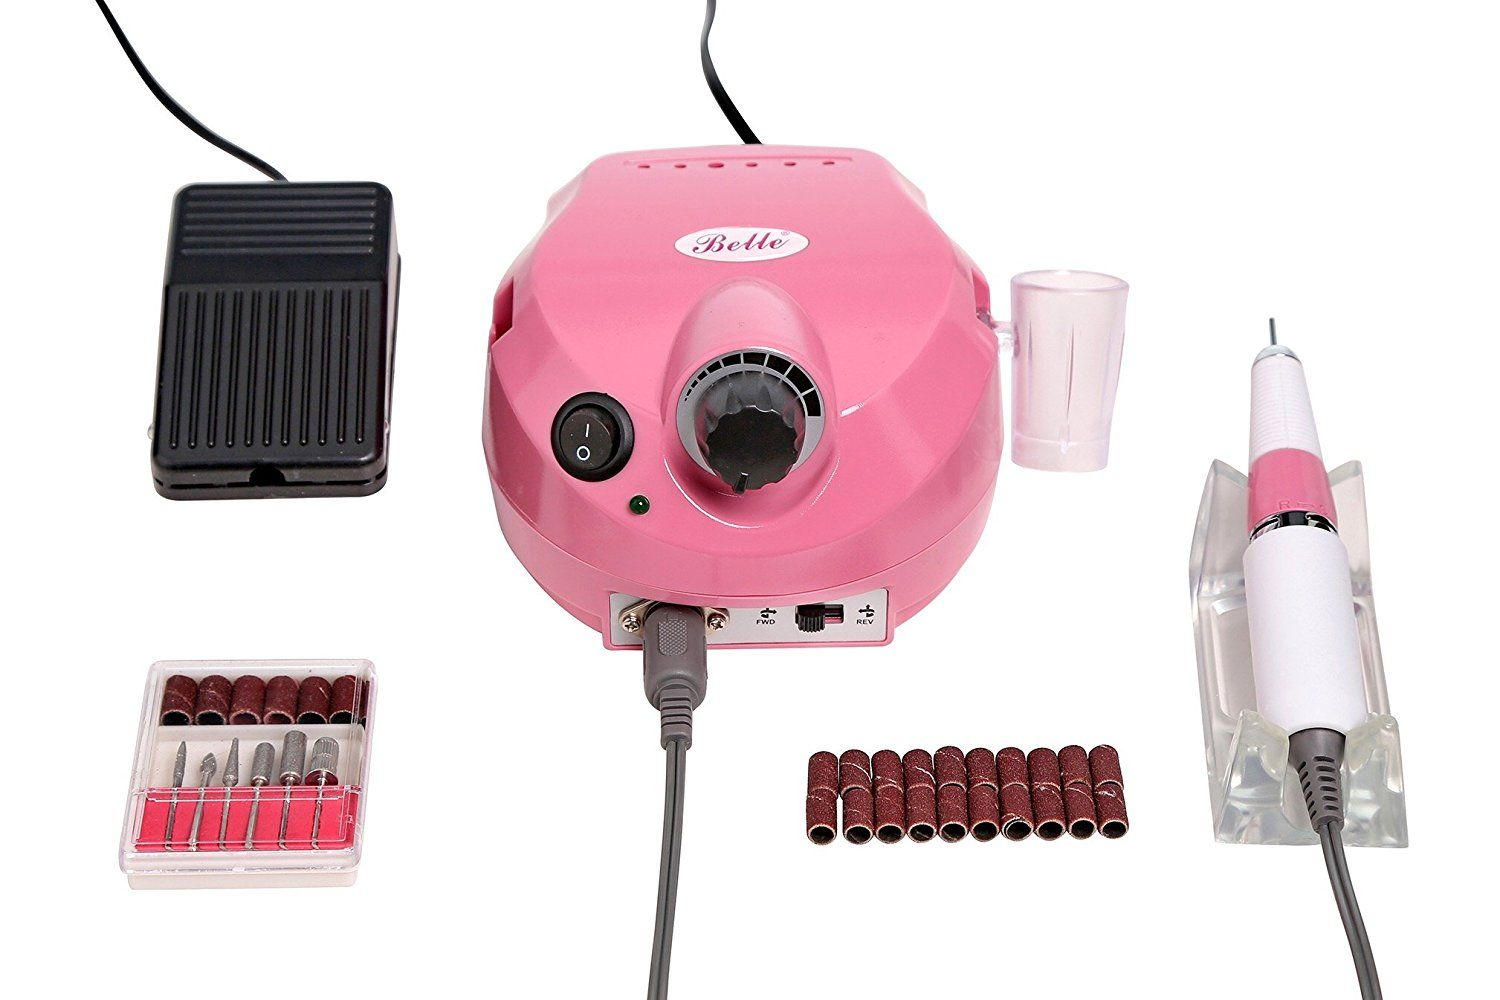 Top 5 Best Electric Nail Drills Reviews on The Market 2017